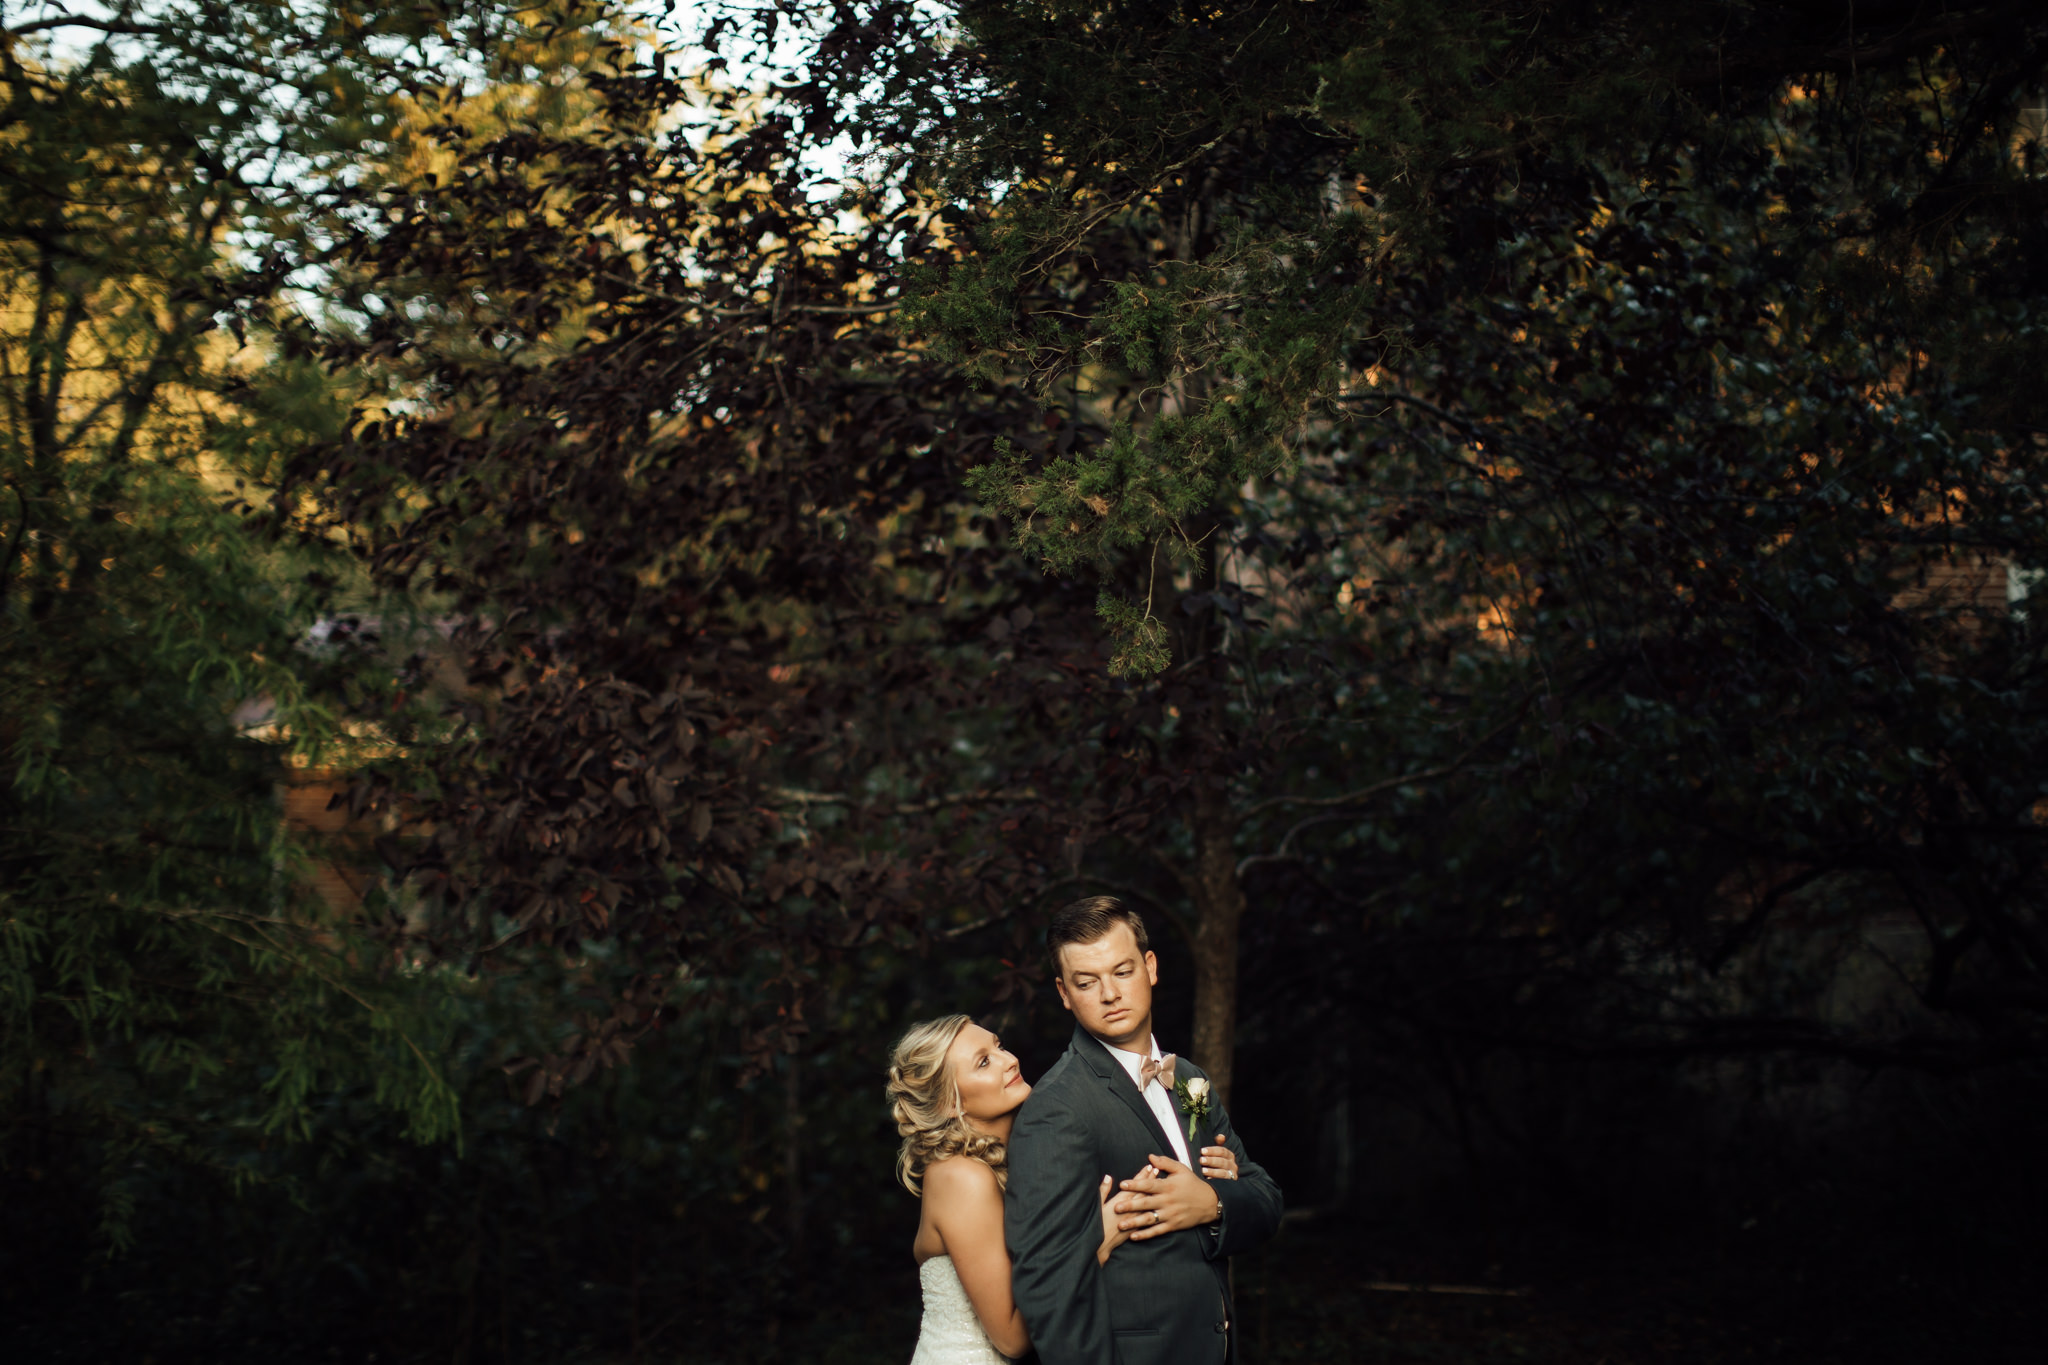 davis-home-strawberry-plains-wedding-cassie-cook-photography-memphis-wedding-photographer-82.jpg